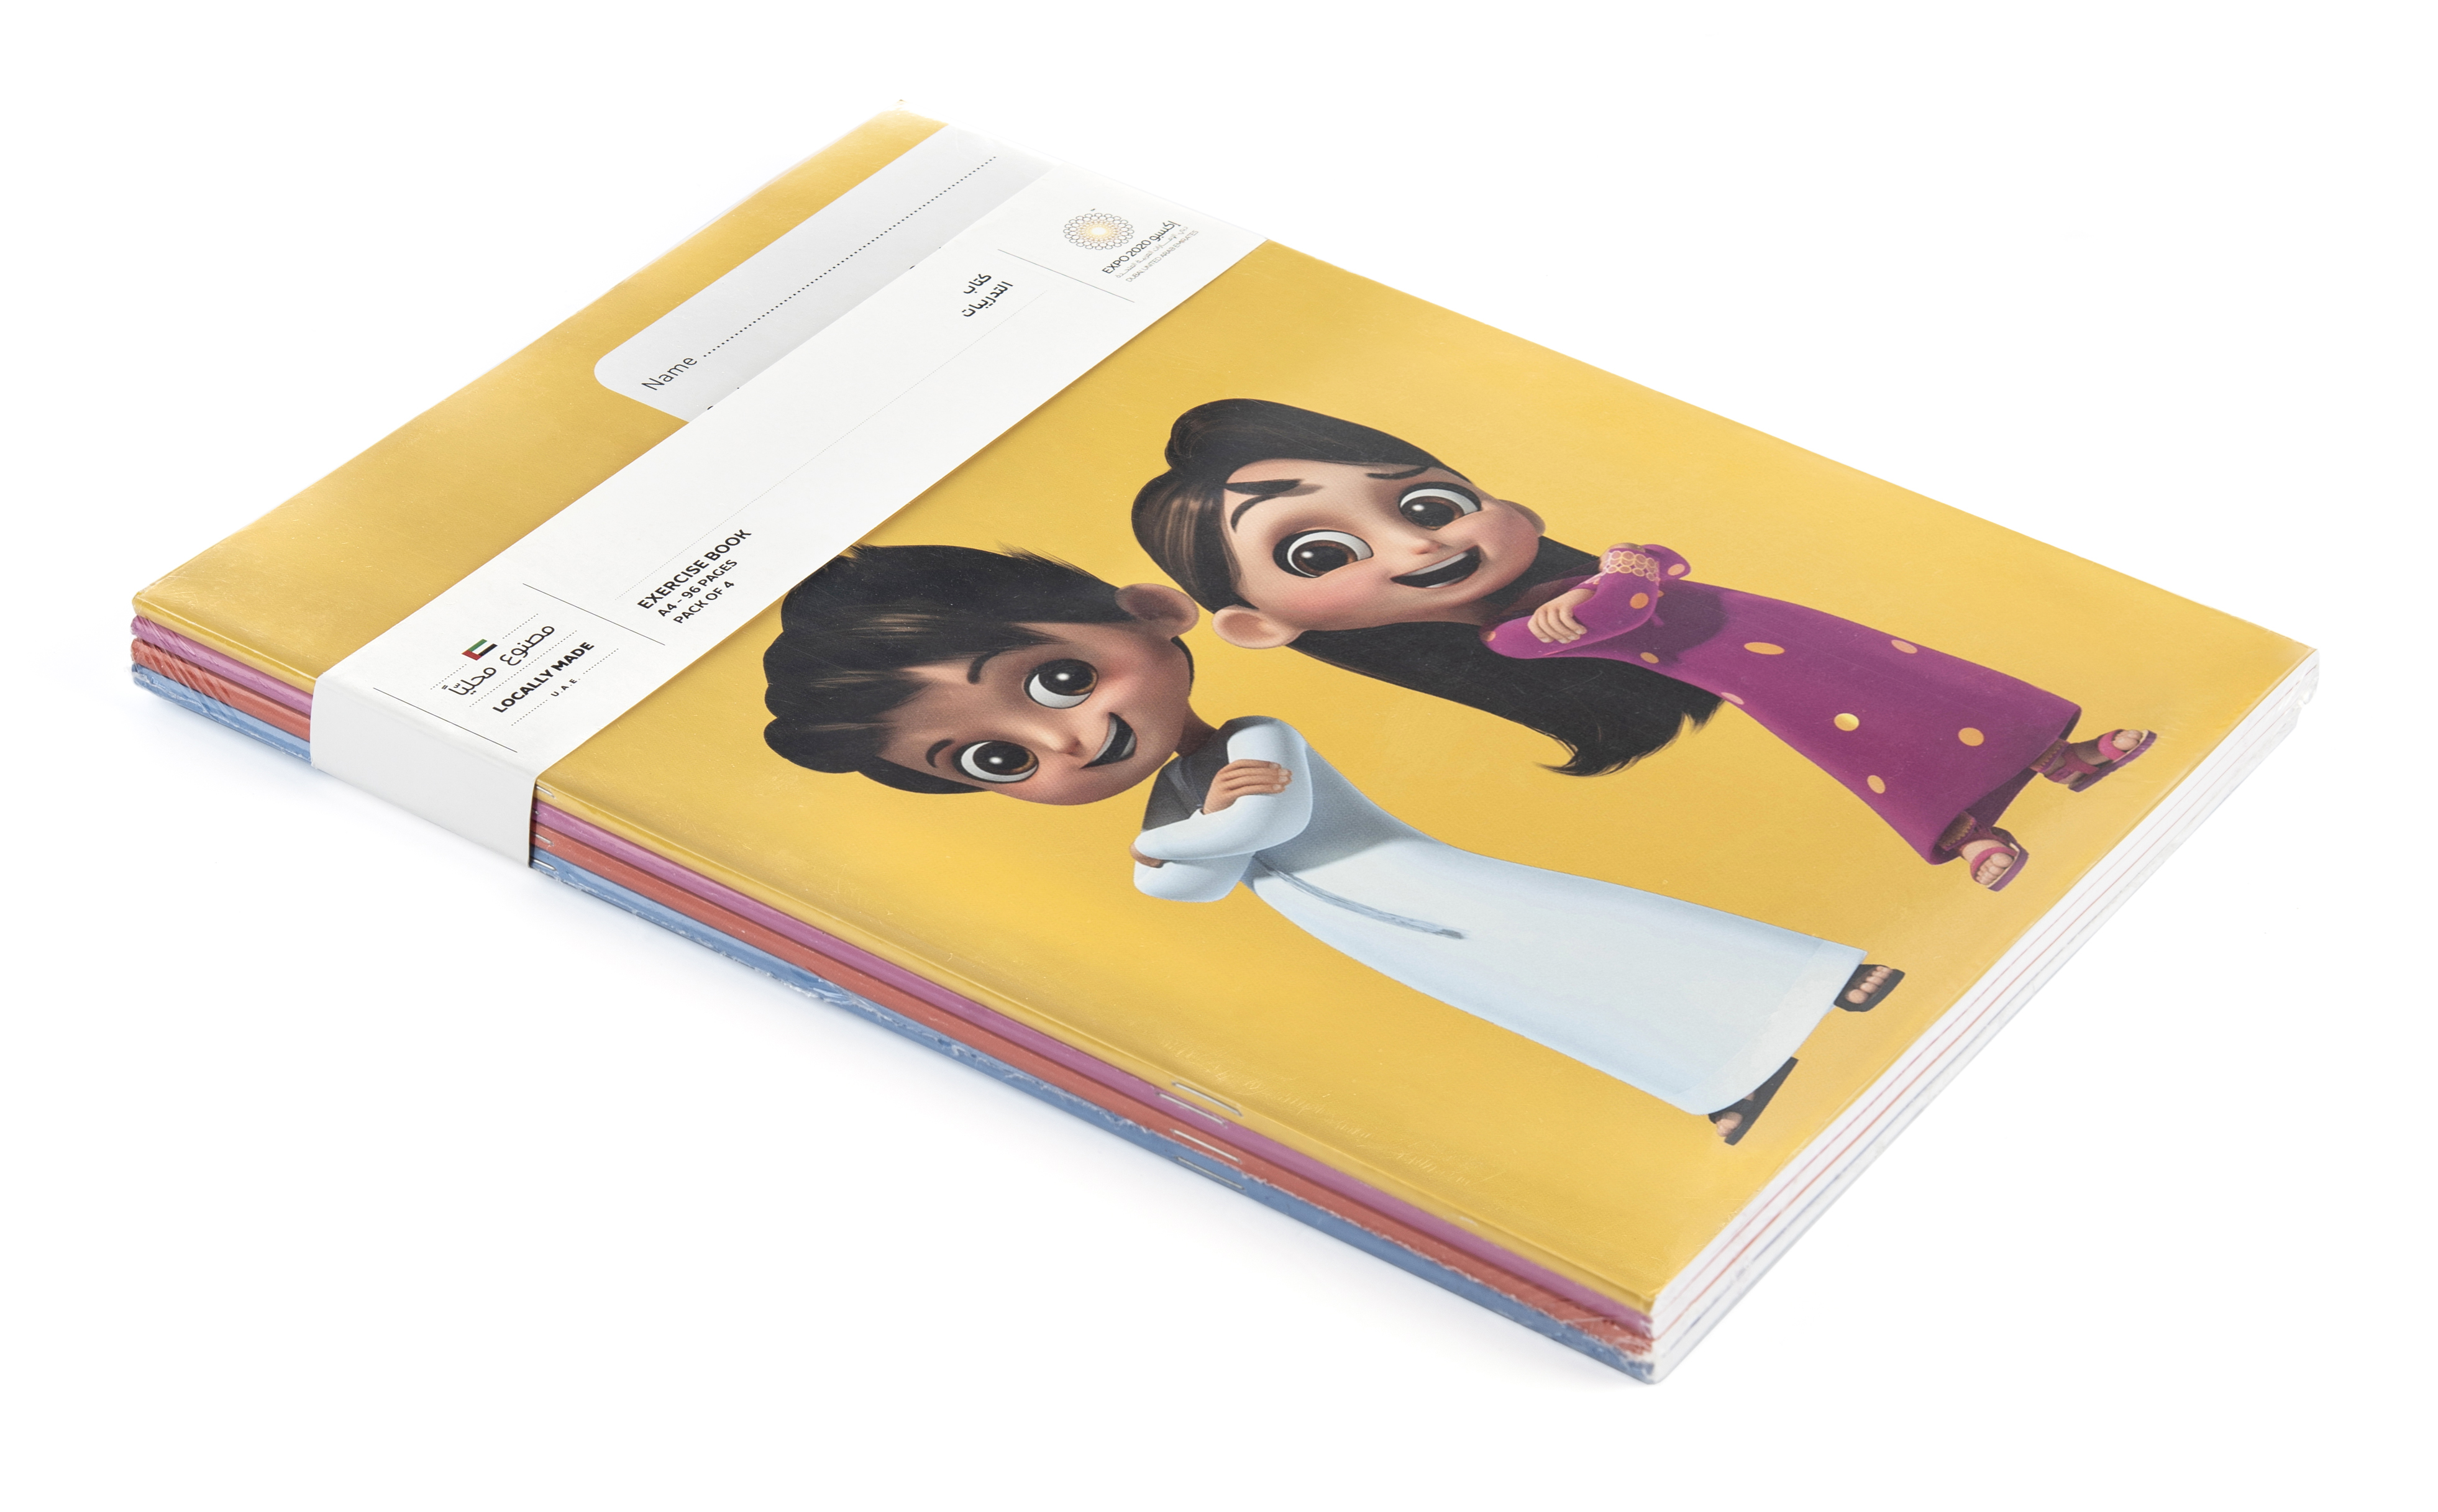 Expo 2020 Dubai Mascots A4 Exercise Books Pack of 4 - 96 Pages